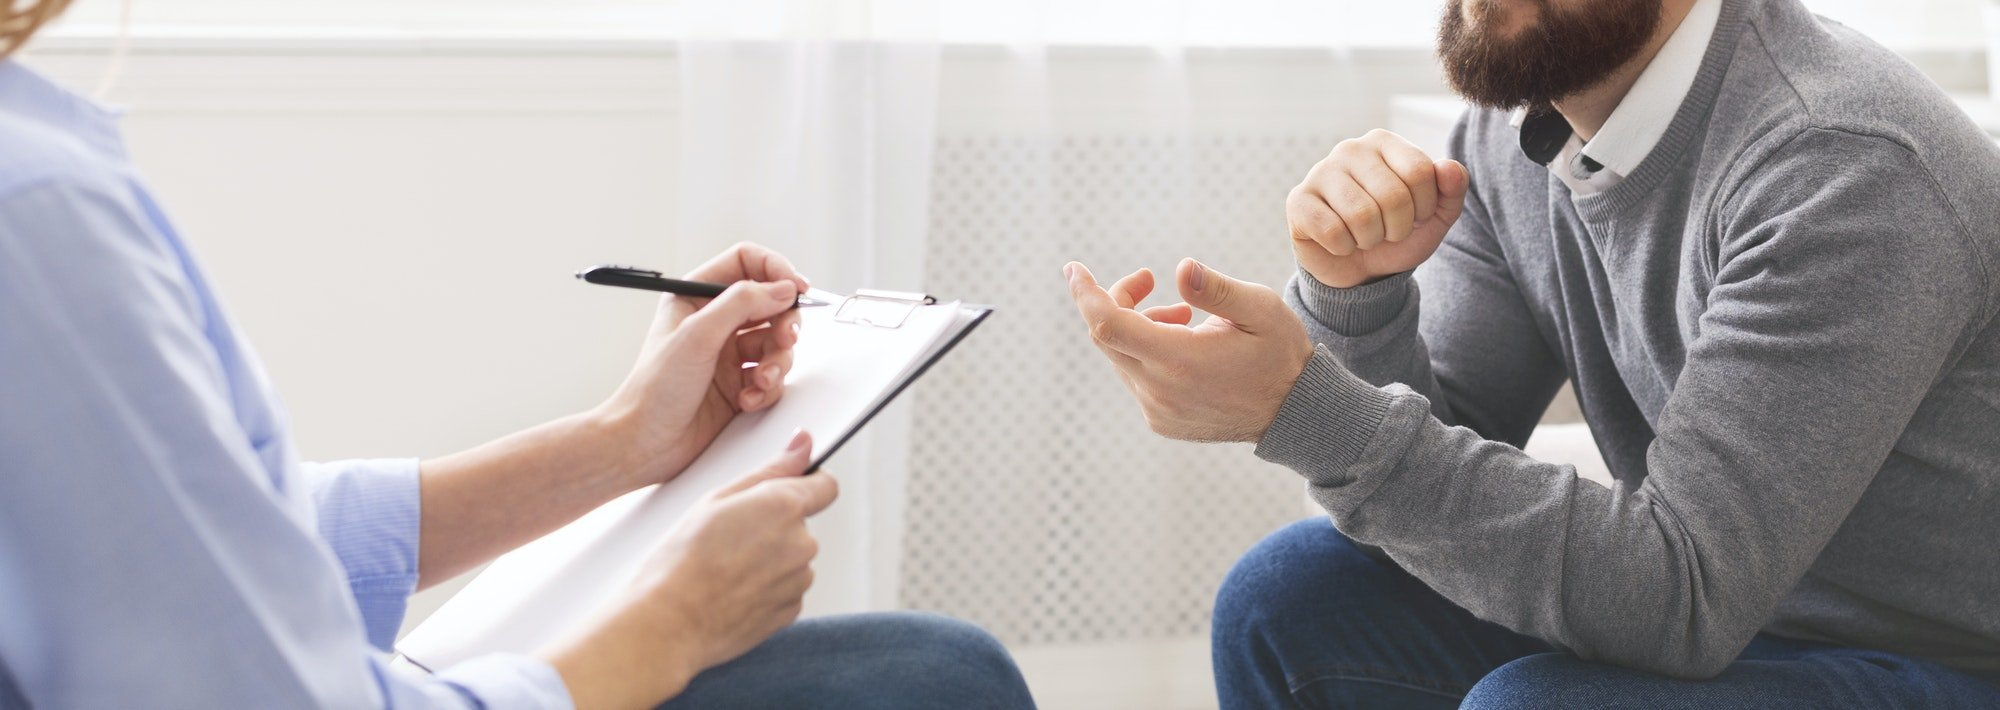 Man with mental problem talking with psychologist during session